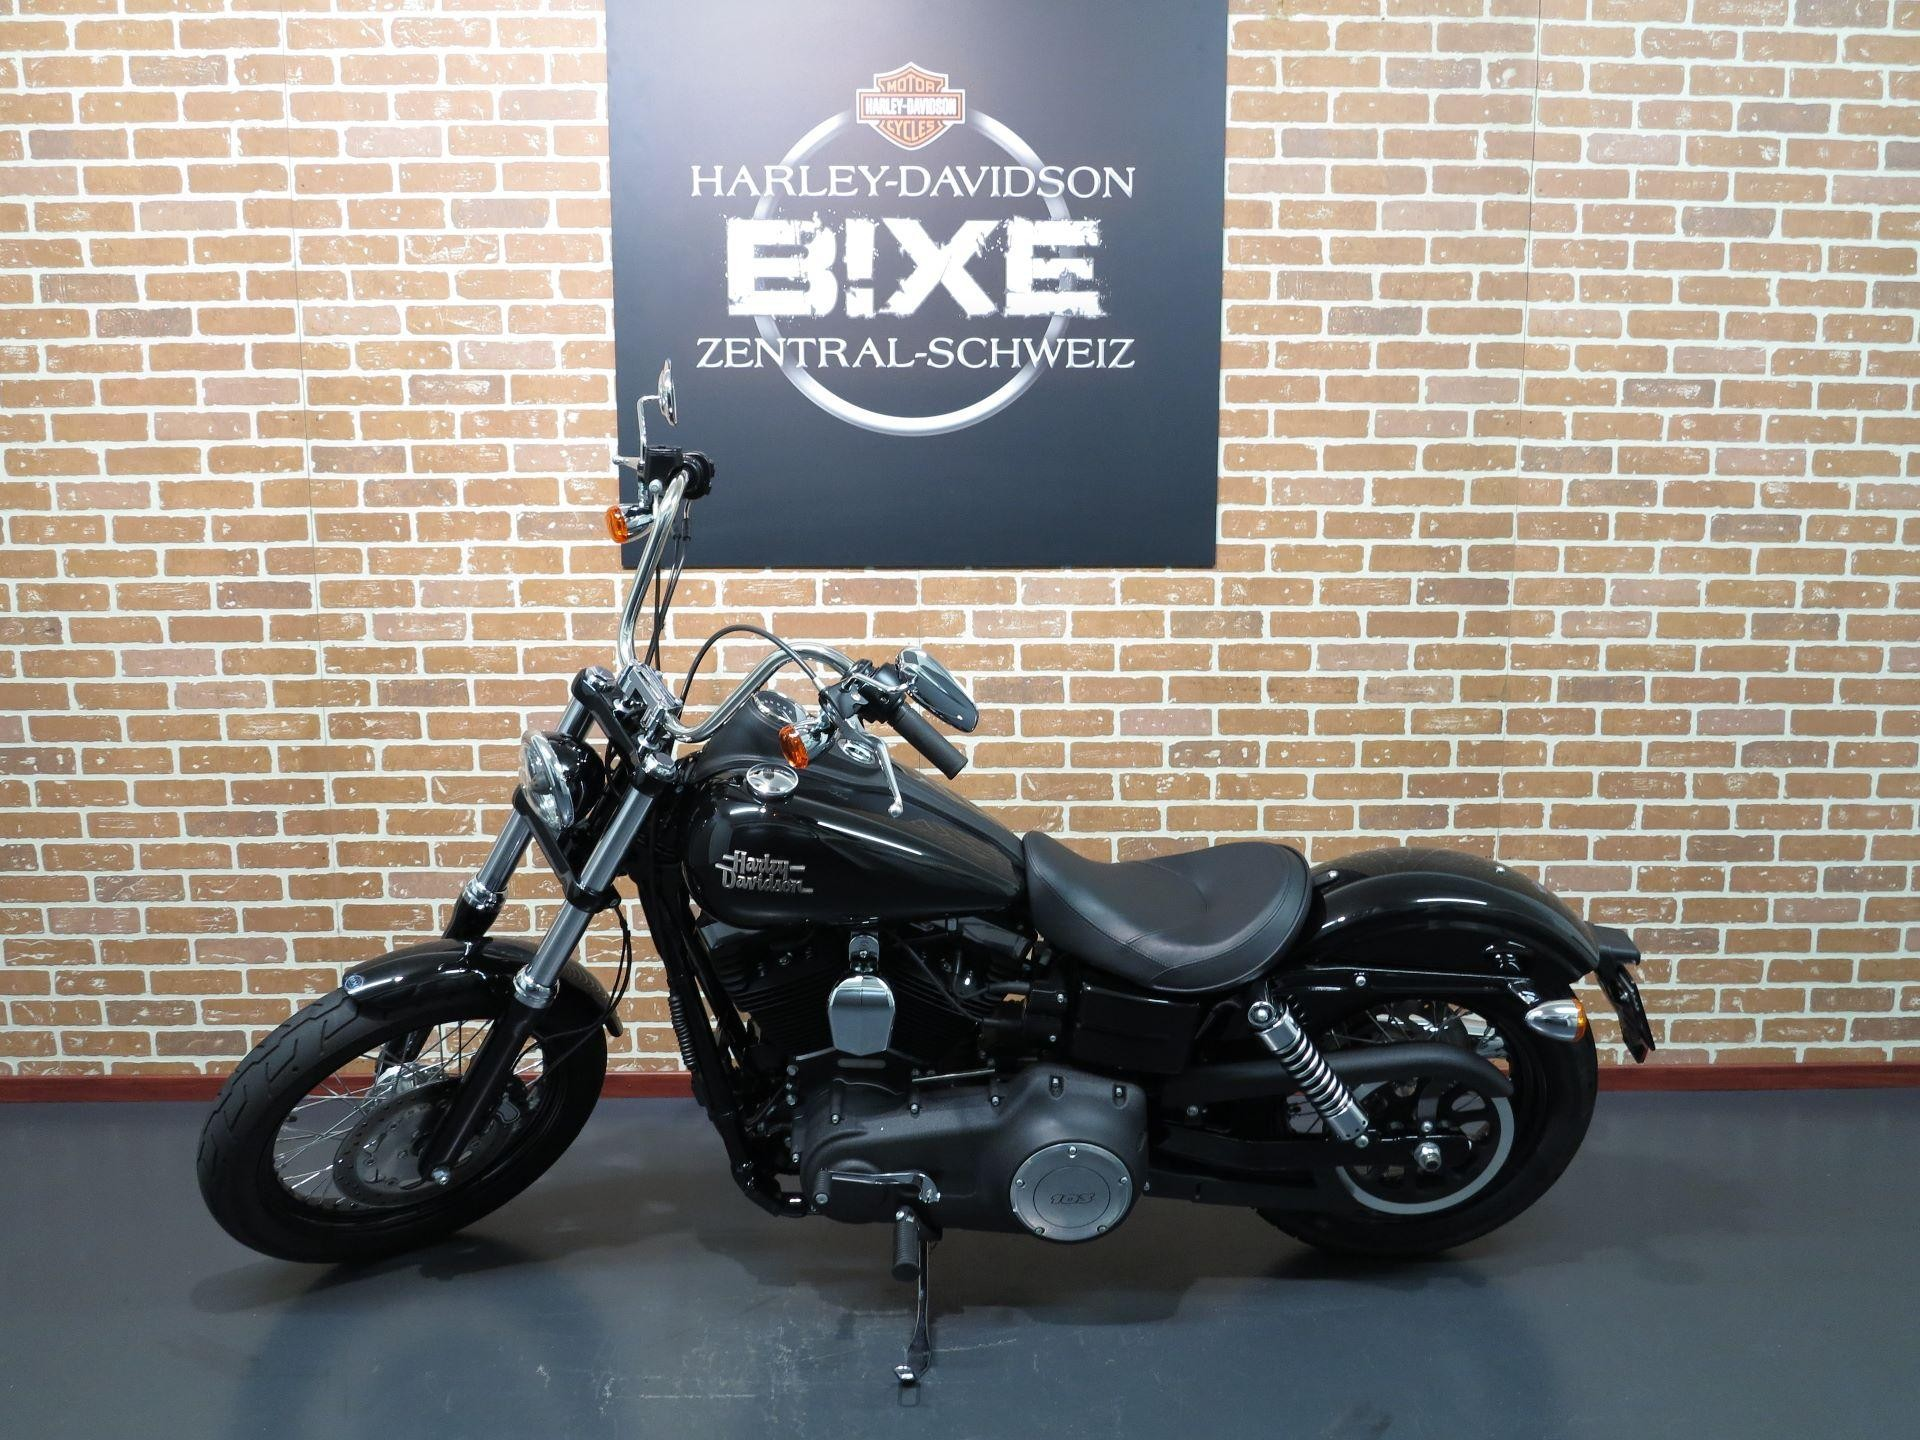 2010 harley davidson fxdb dyna street bob pics specs and information. Black Bedroom Furniture Sets. Home Design Ideas